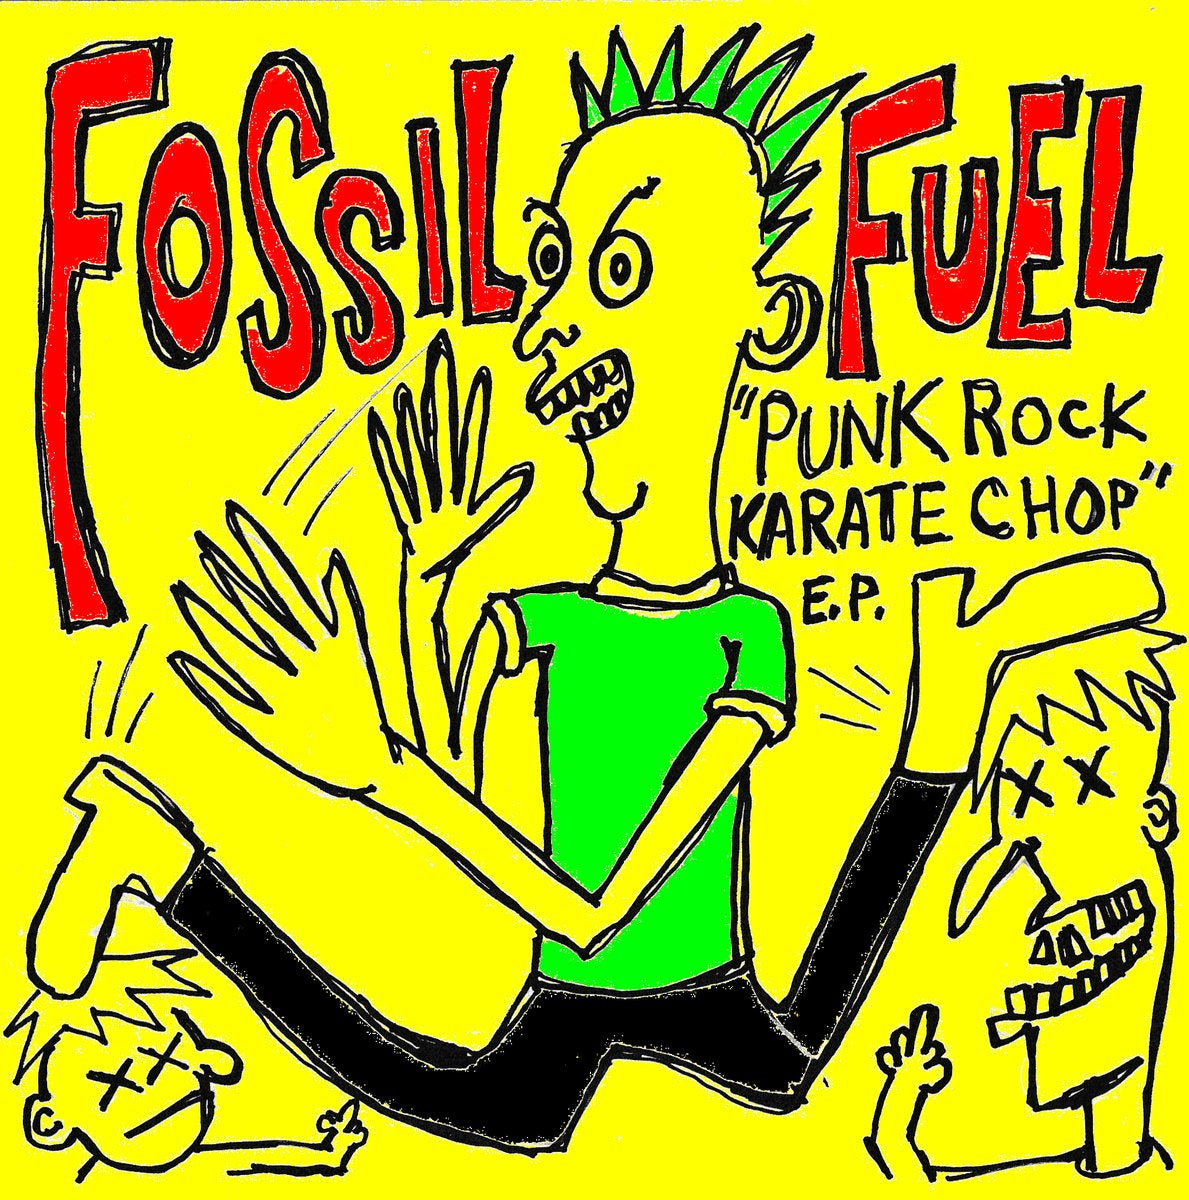 Fossil Fuel - Punk Rock Karate Chop EP